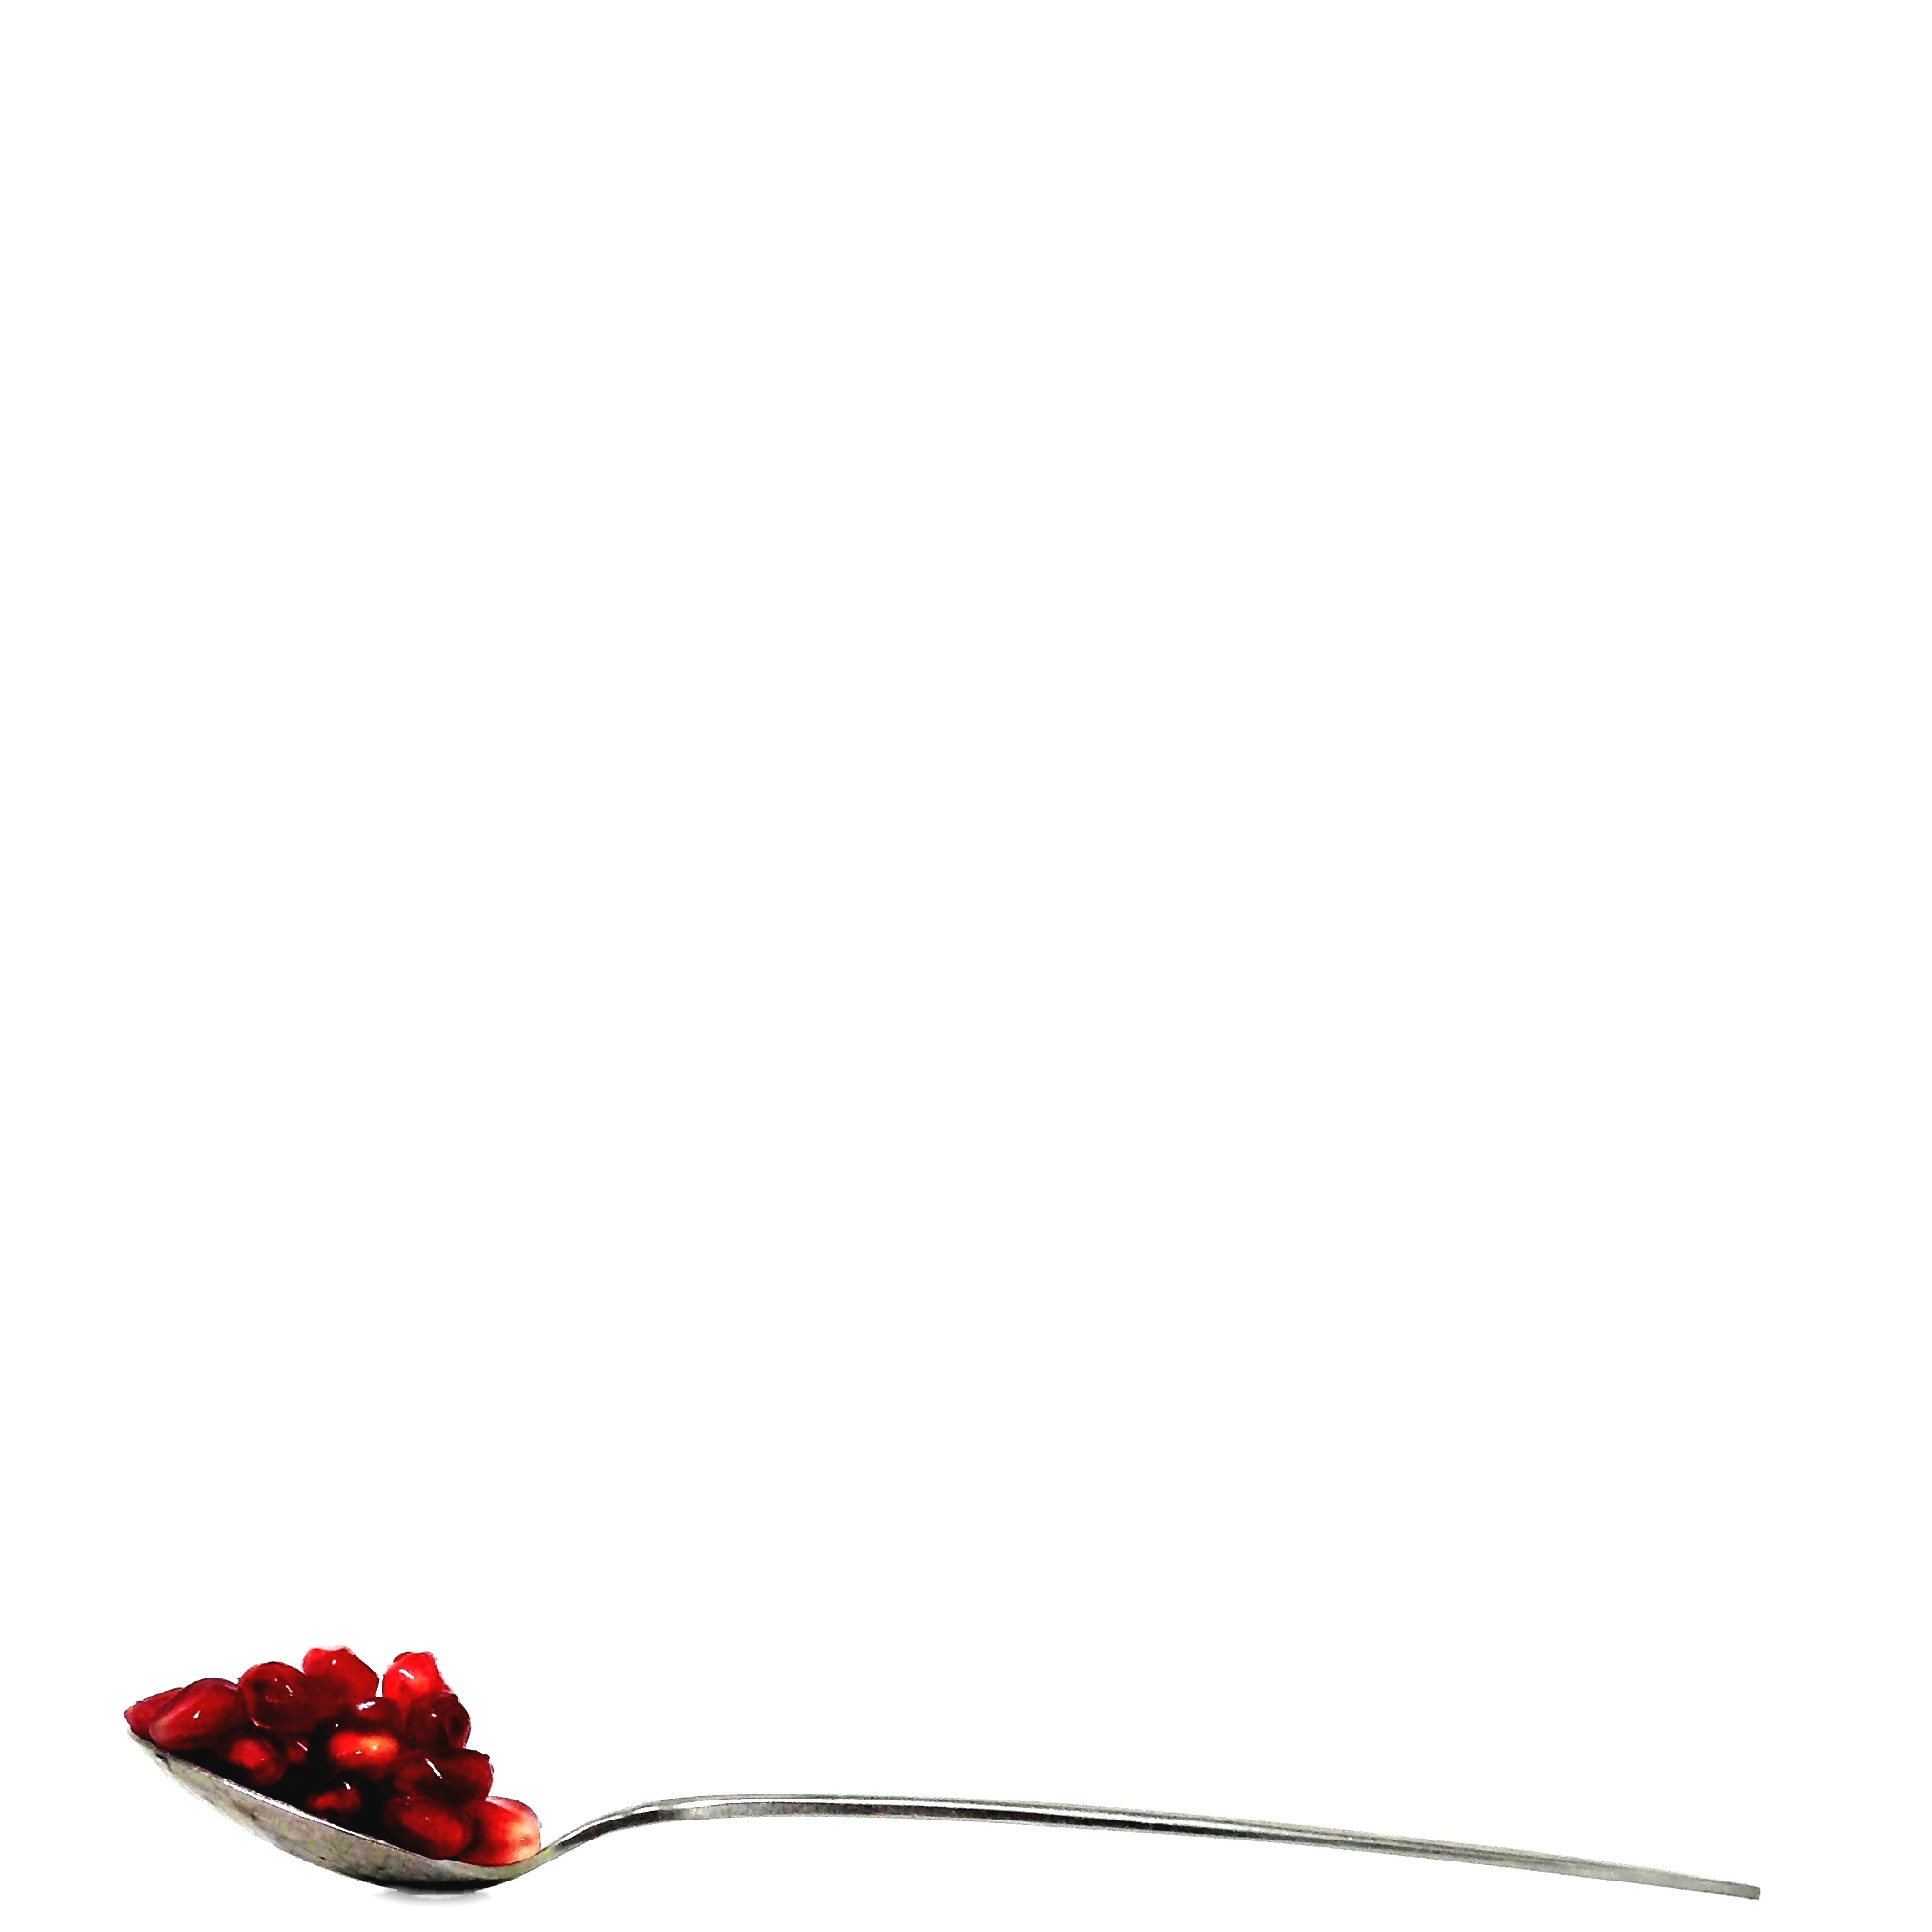 Pomegranate on a Spoon